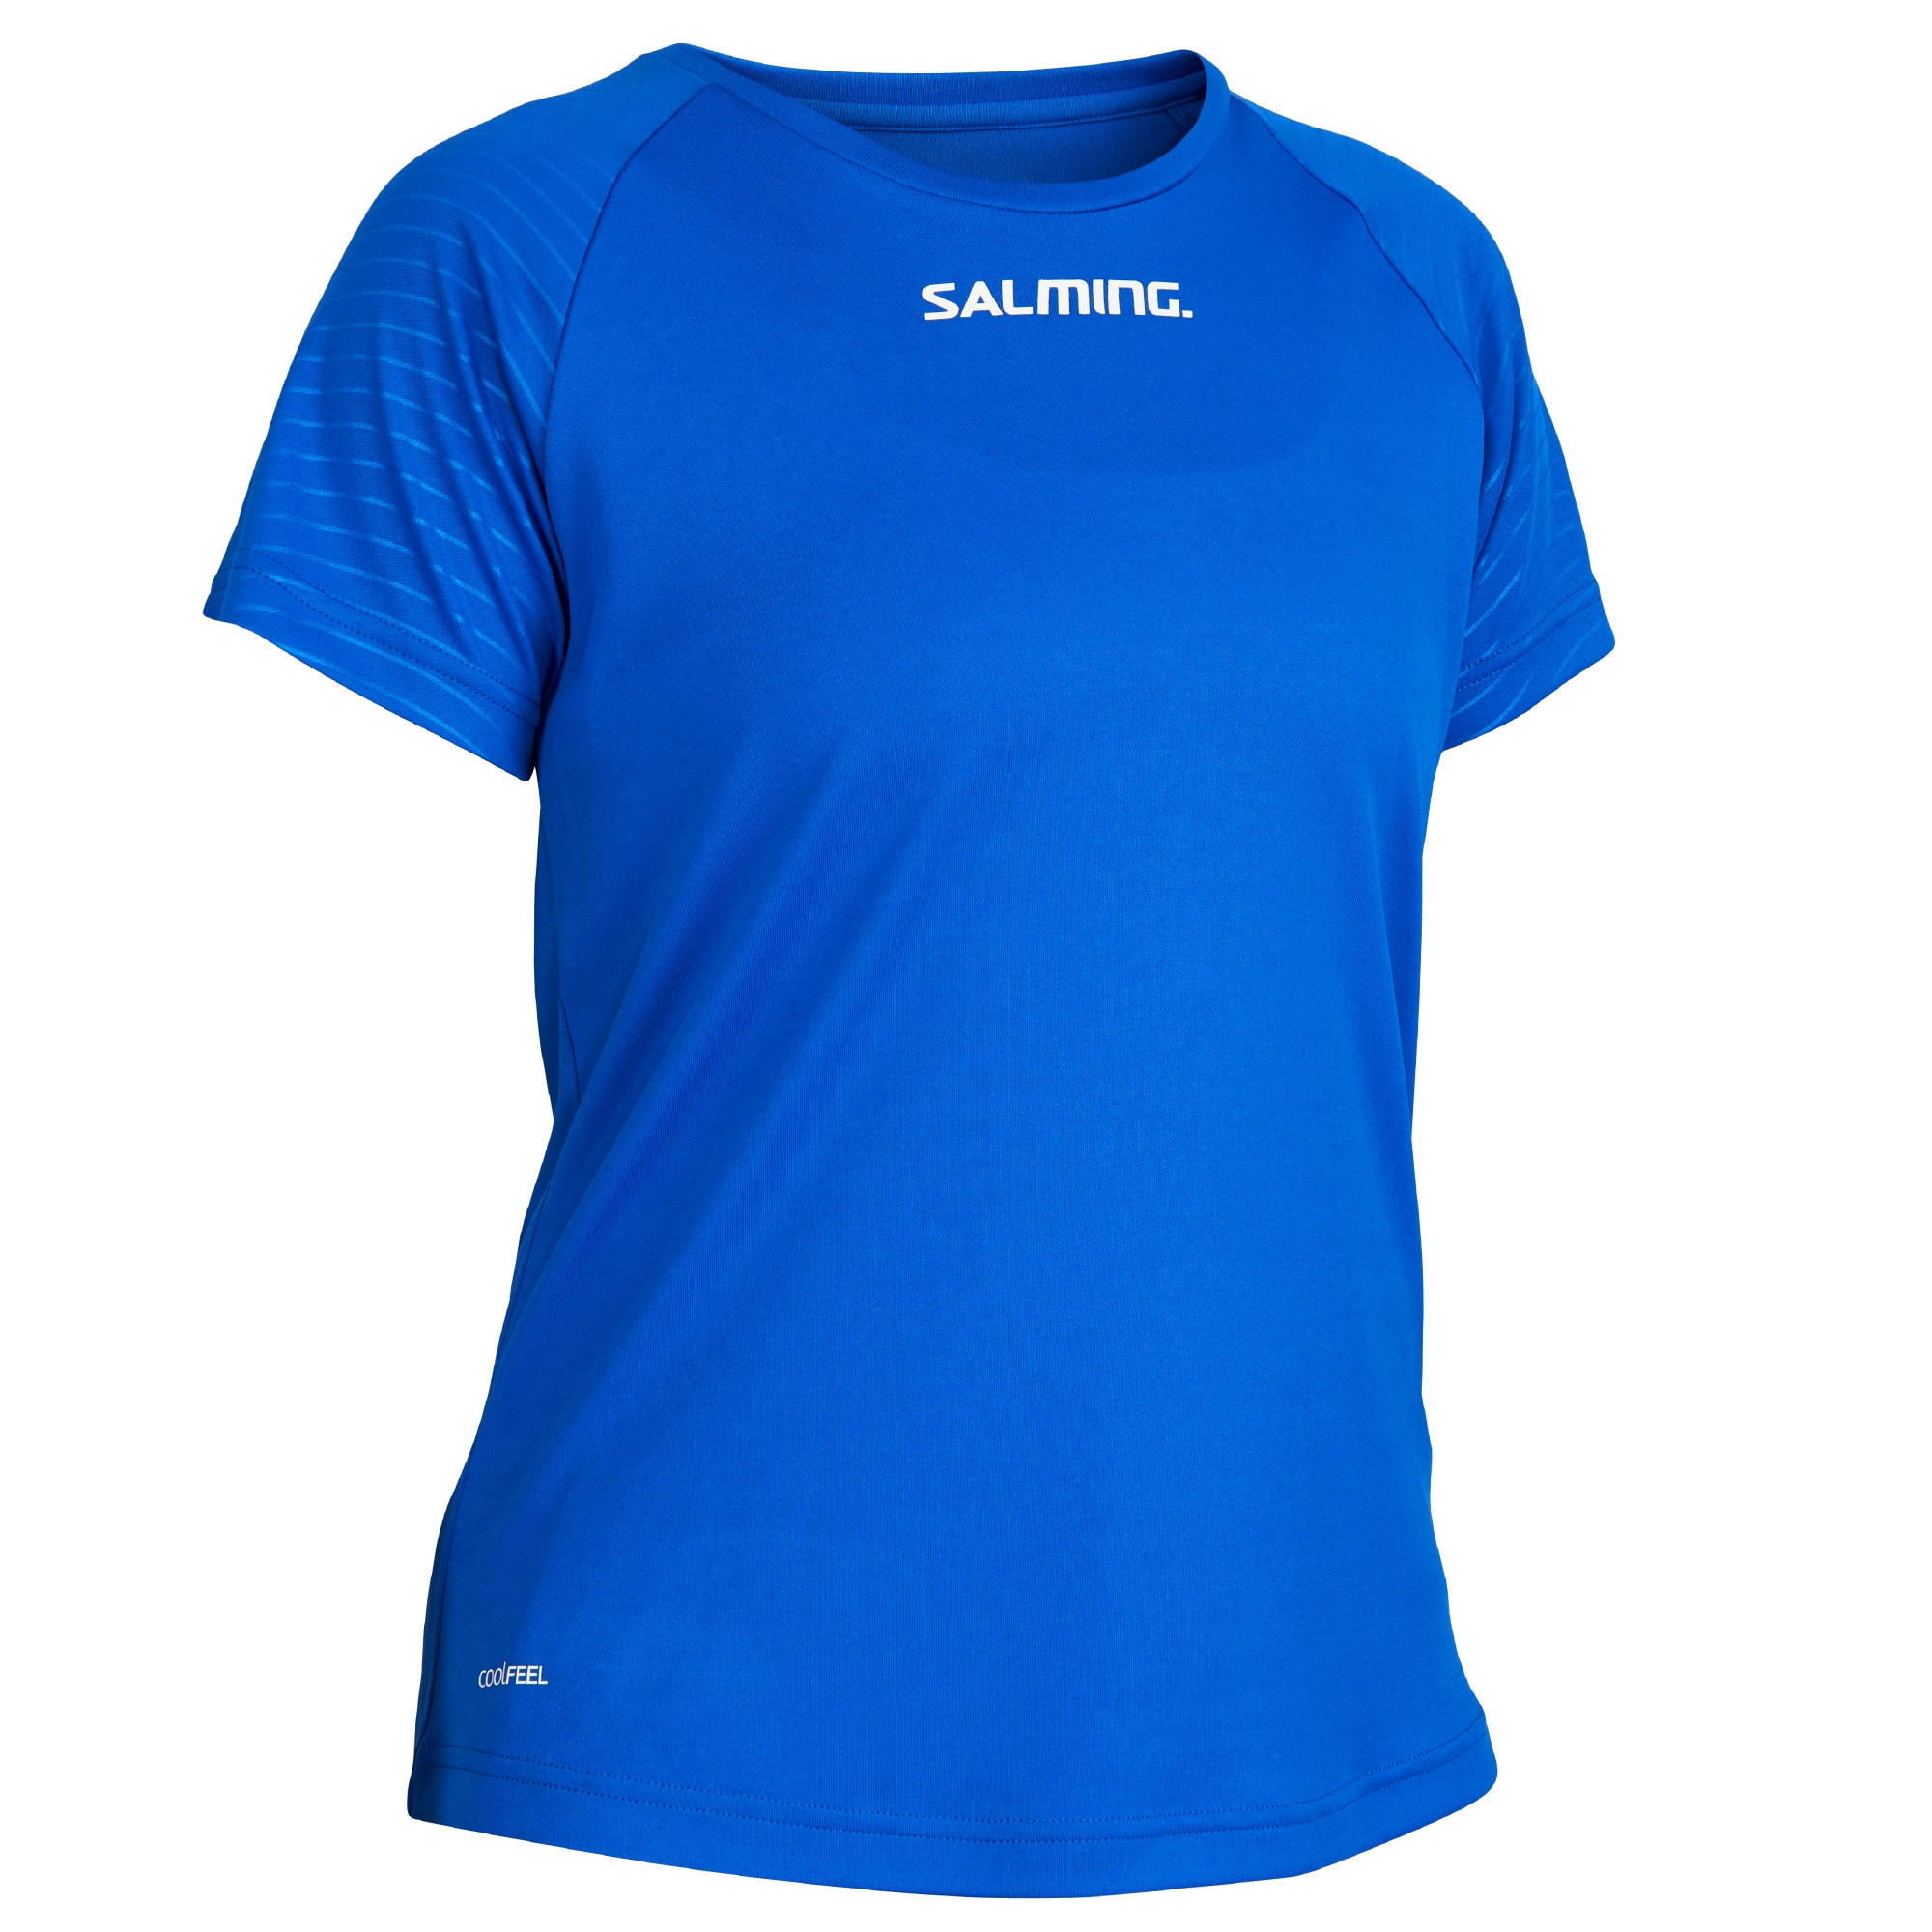 Salming Diamond Game Tee XL, modrá